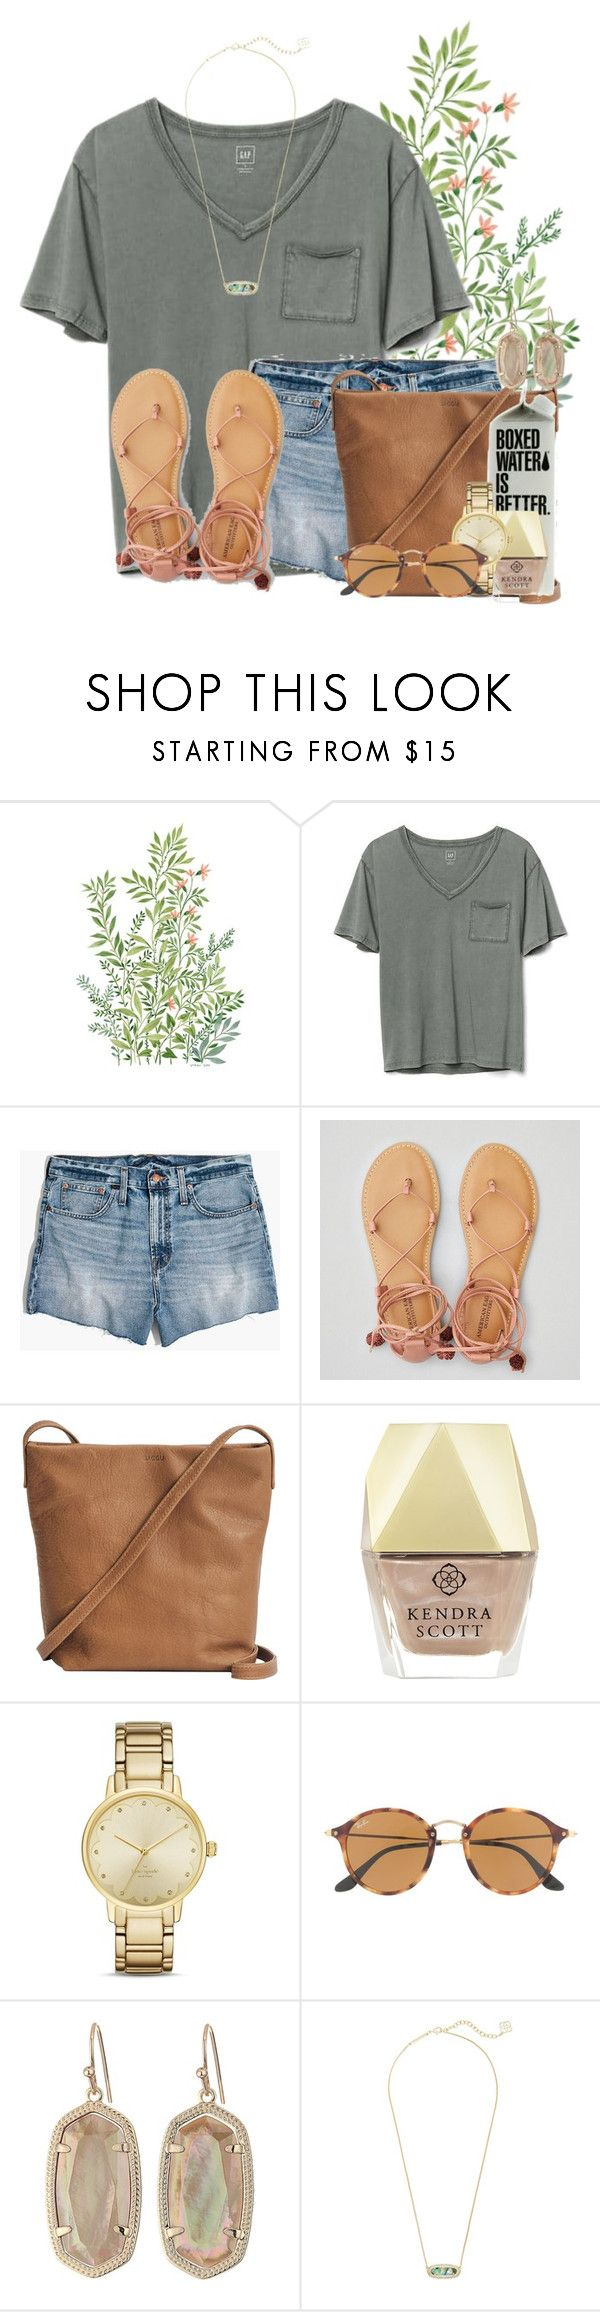 """""""Got the youth group coming tonight"""" by flroasburn ❤ liked on Polyvore featuring Gap, Madewell, American Eagle Outfitters, BAGGU, Kendra Scott, Kate Spade and Ray-Ban"""